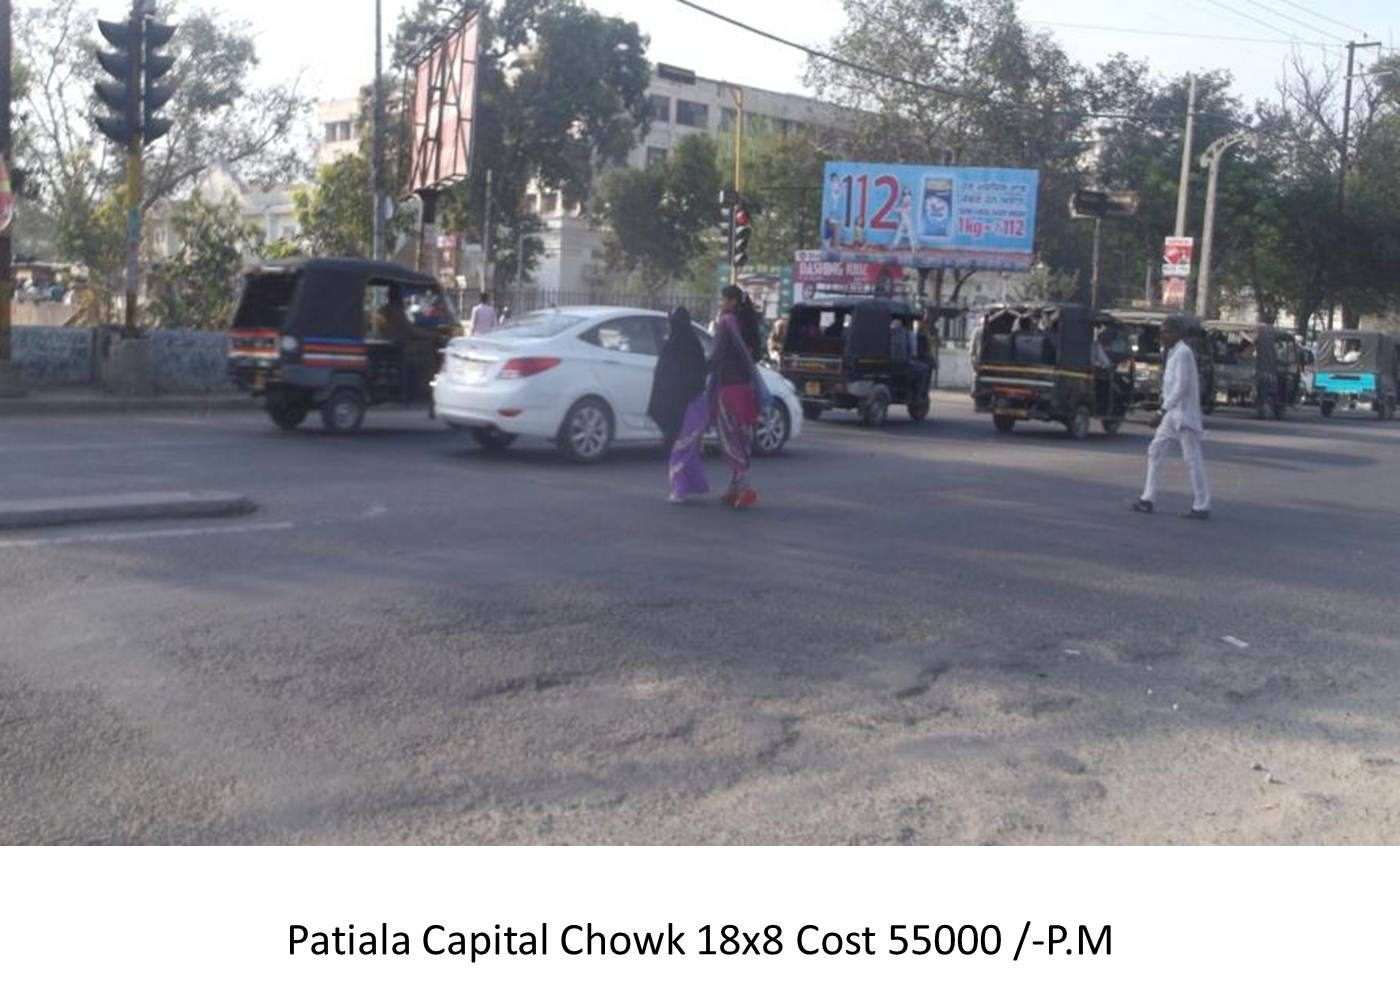 Capital Chowk, Patiala